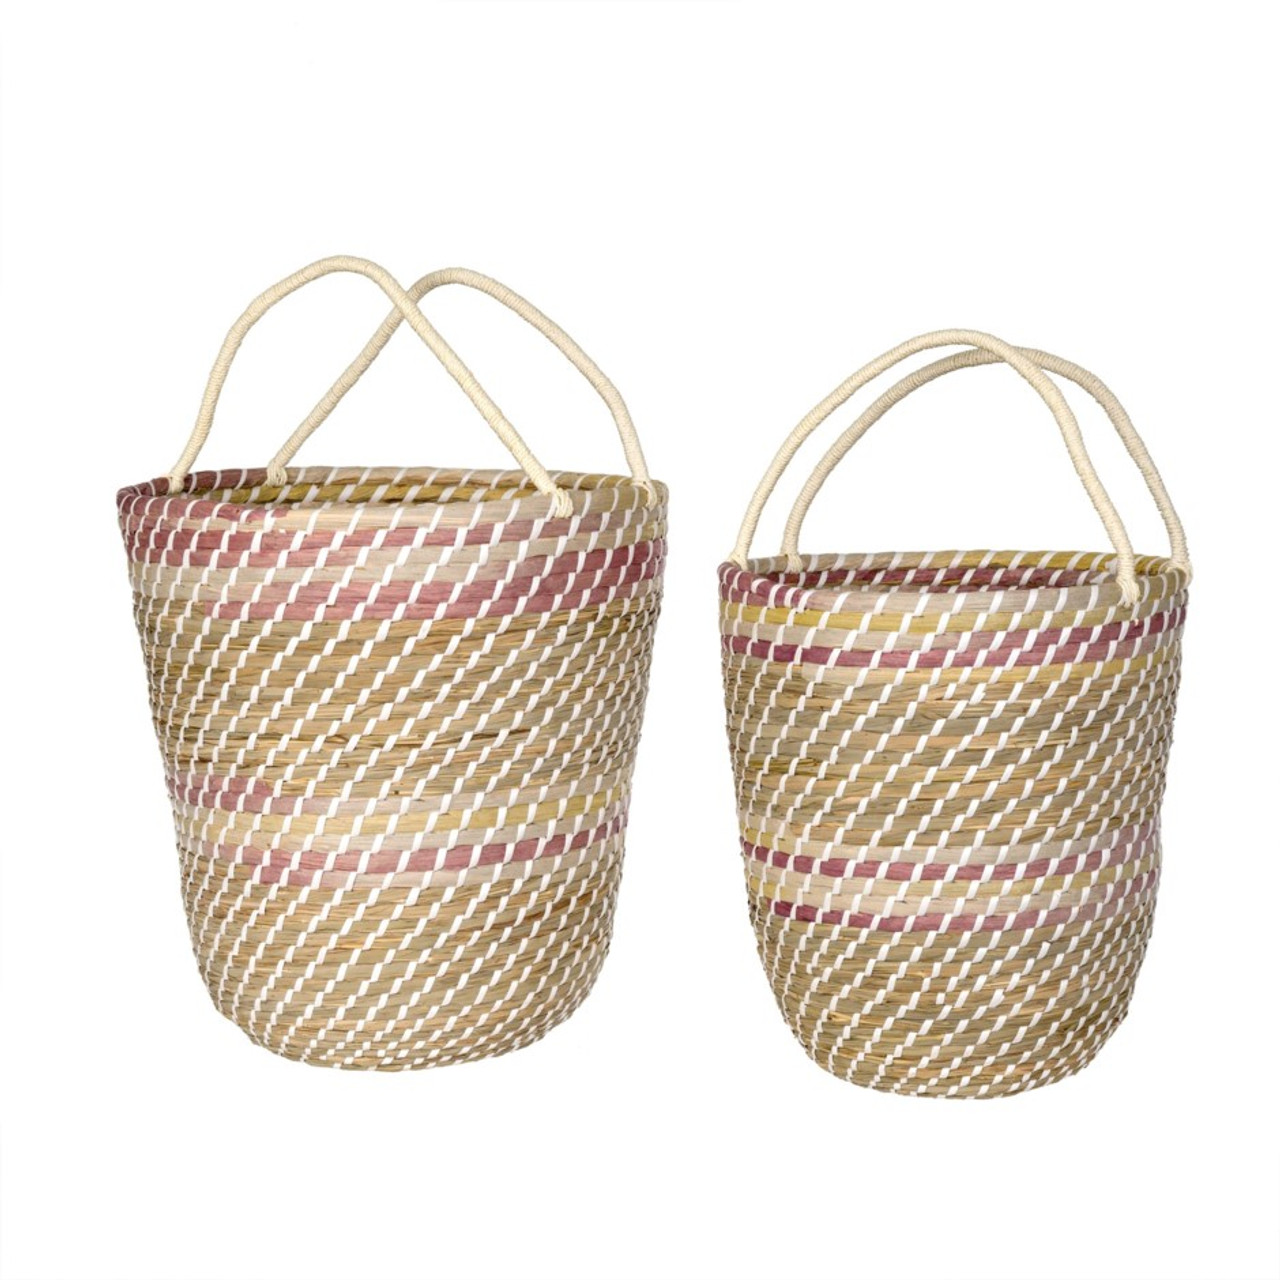 BASKET SET - SUNSET OMBRE